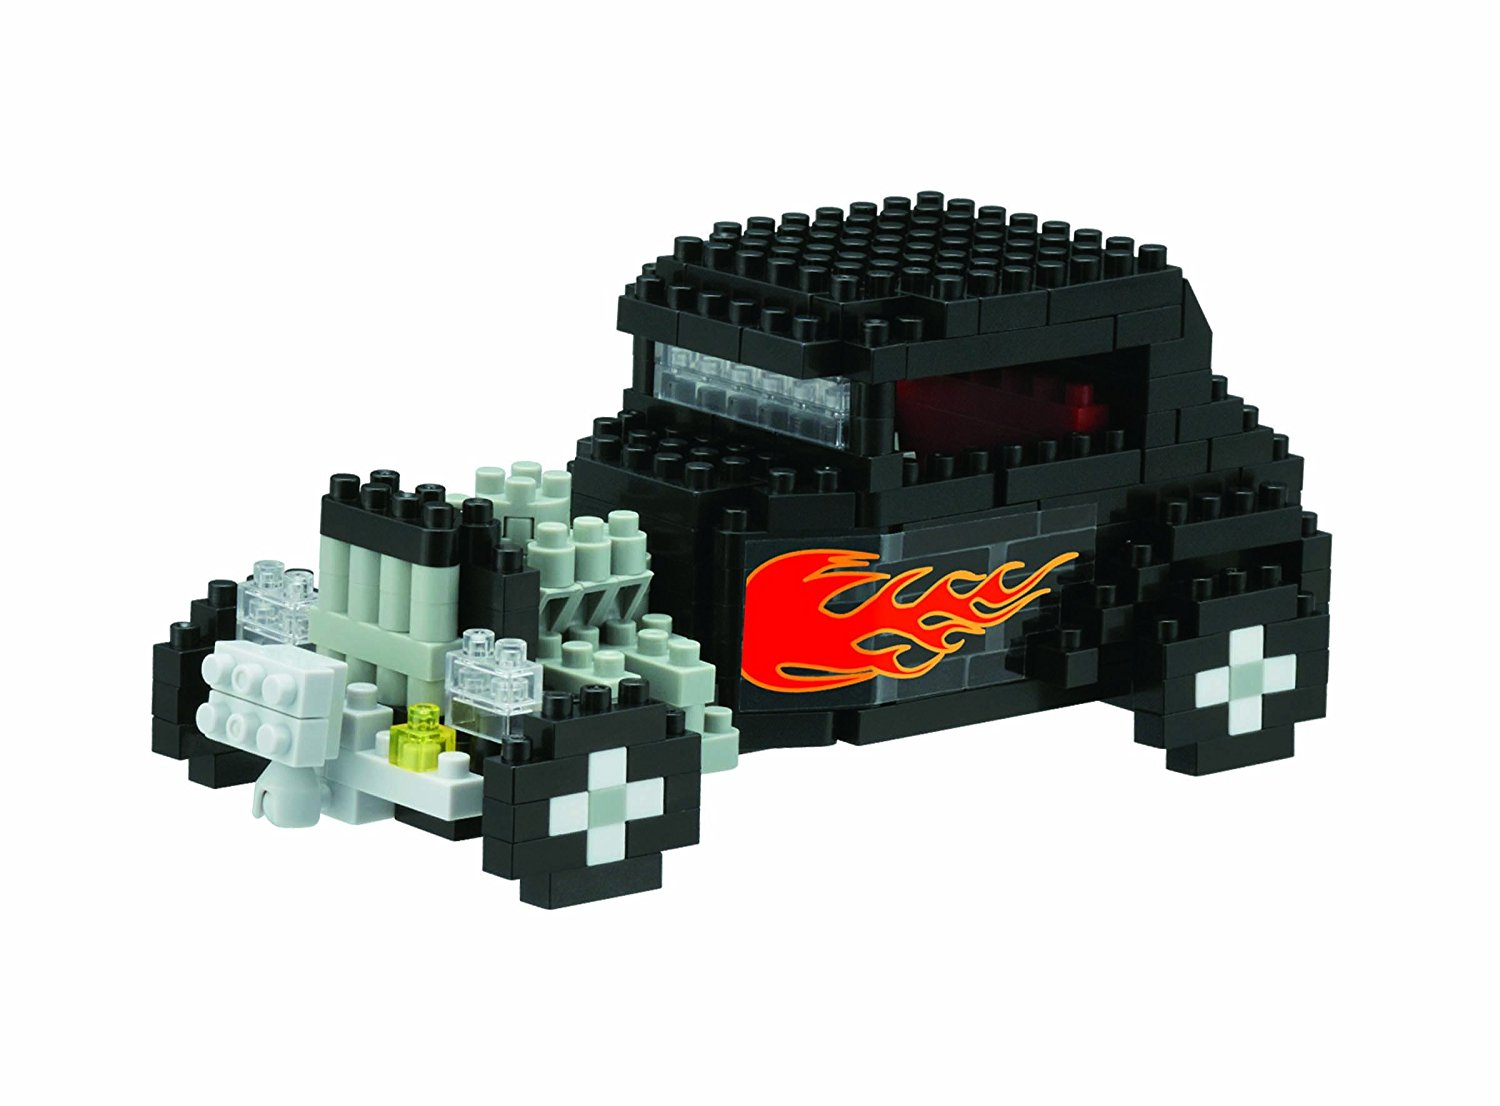 Nanoblock Hot Rod 3D Puzzle by nanoblock